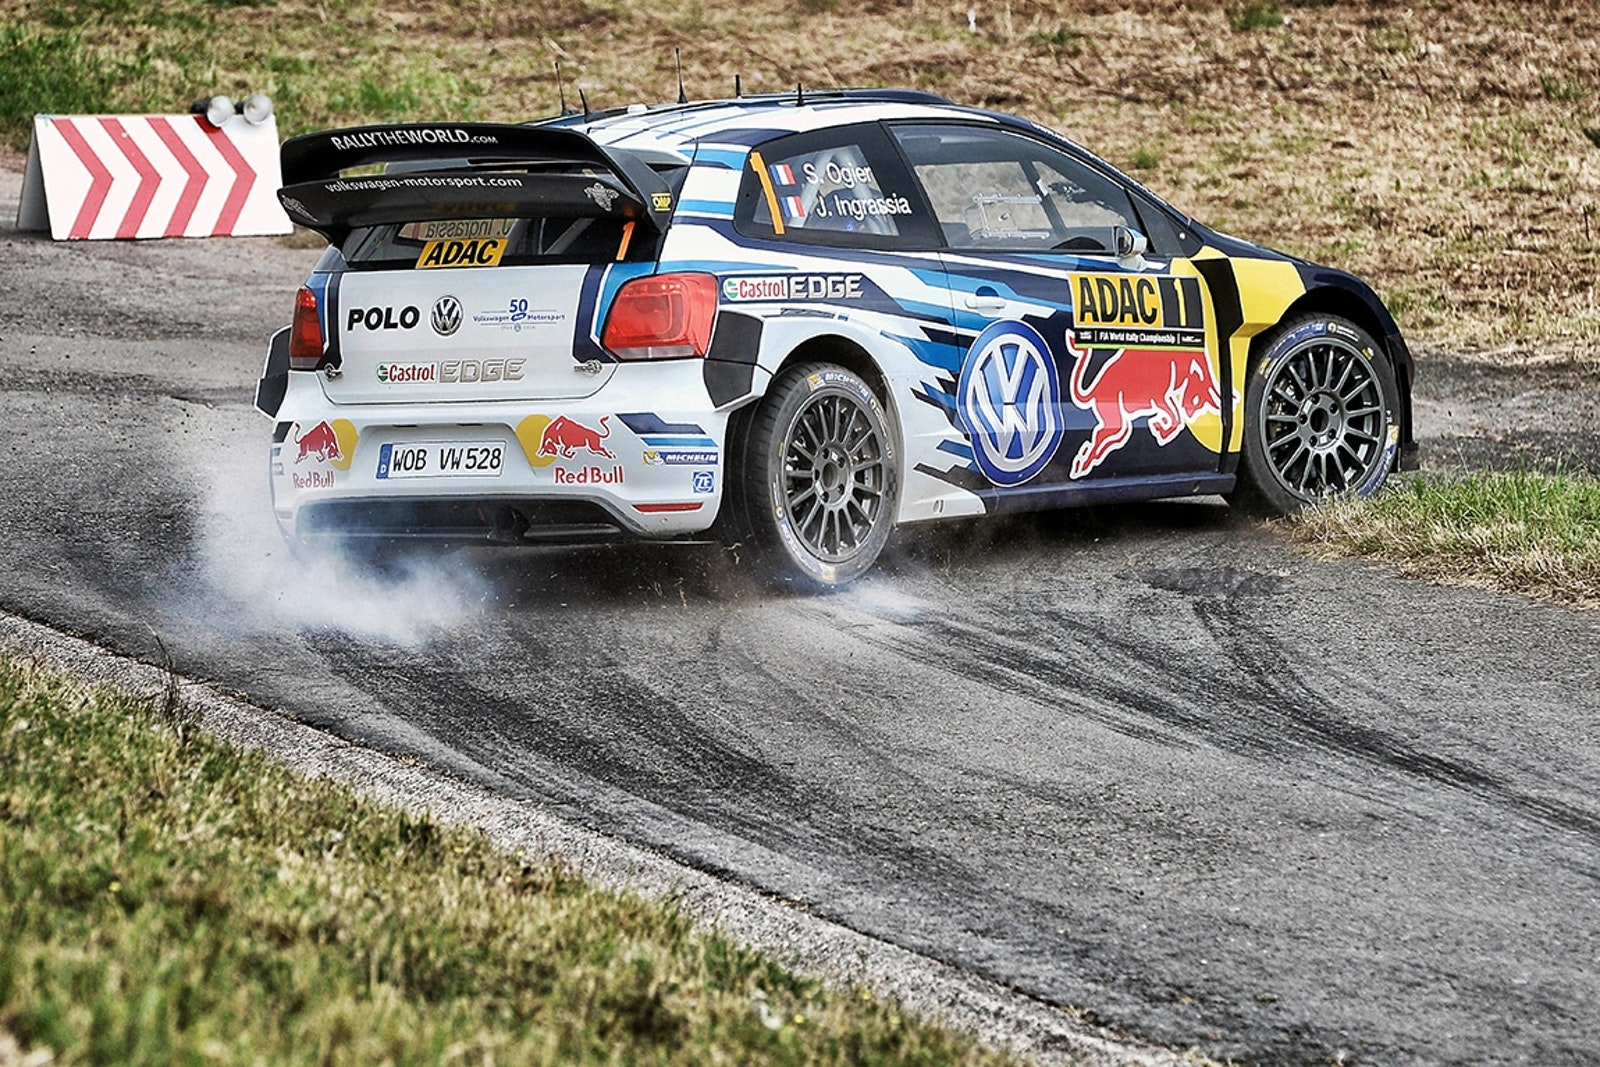 Sebastien Ogier (FR), Julien Ingrassia (FR) performs during FIA World Rally Championship 2016 Germany in Trier, Germany on August 18, 2016   // @World / Red Bull Content Pool // P-20160822-00712 // Usage for editorial use only // Please go to www.redbullcontentpool.com for further information. //